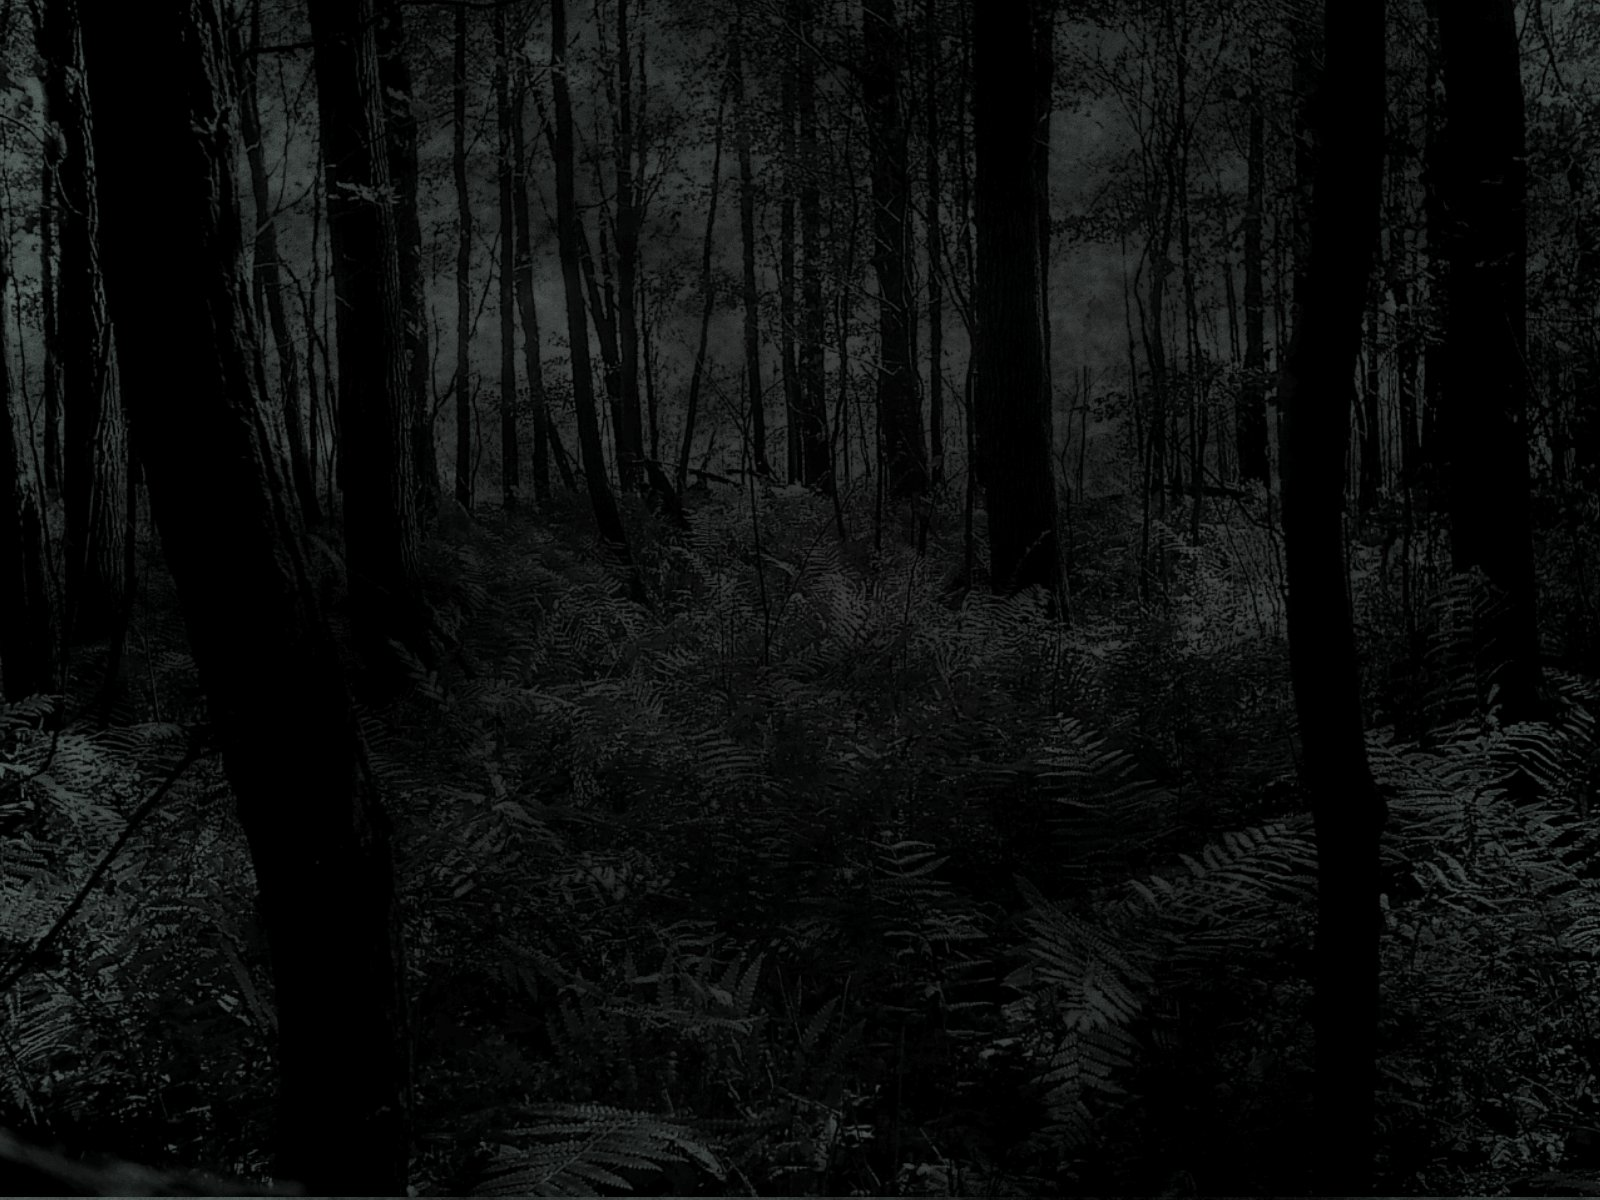 the darkness engulfs and - photo #38